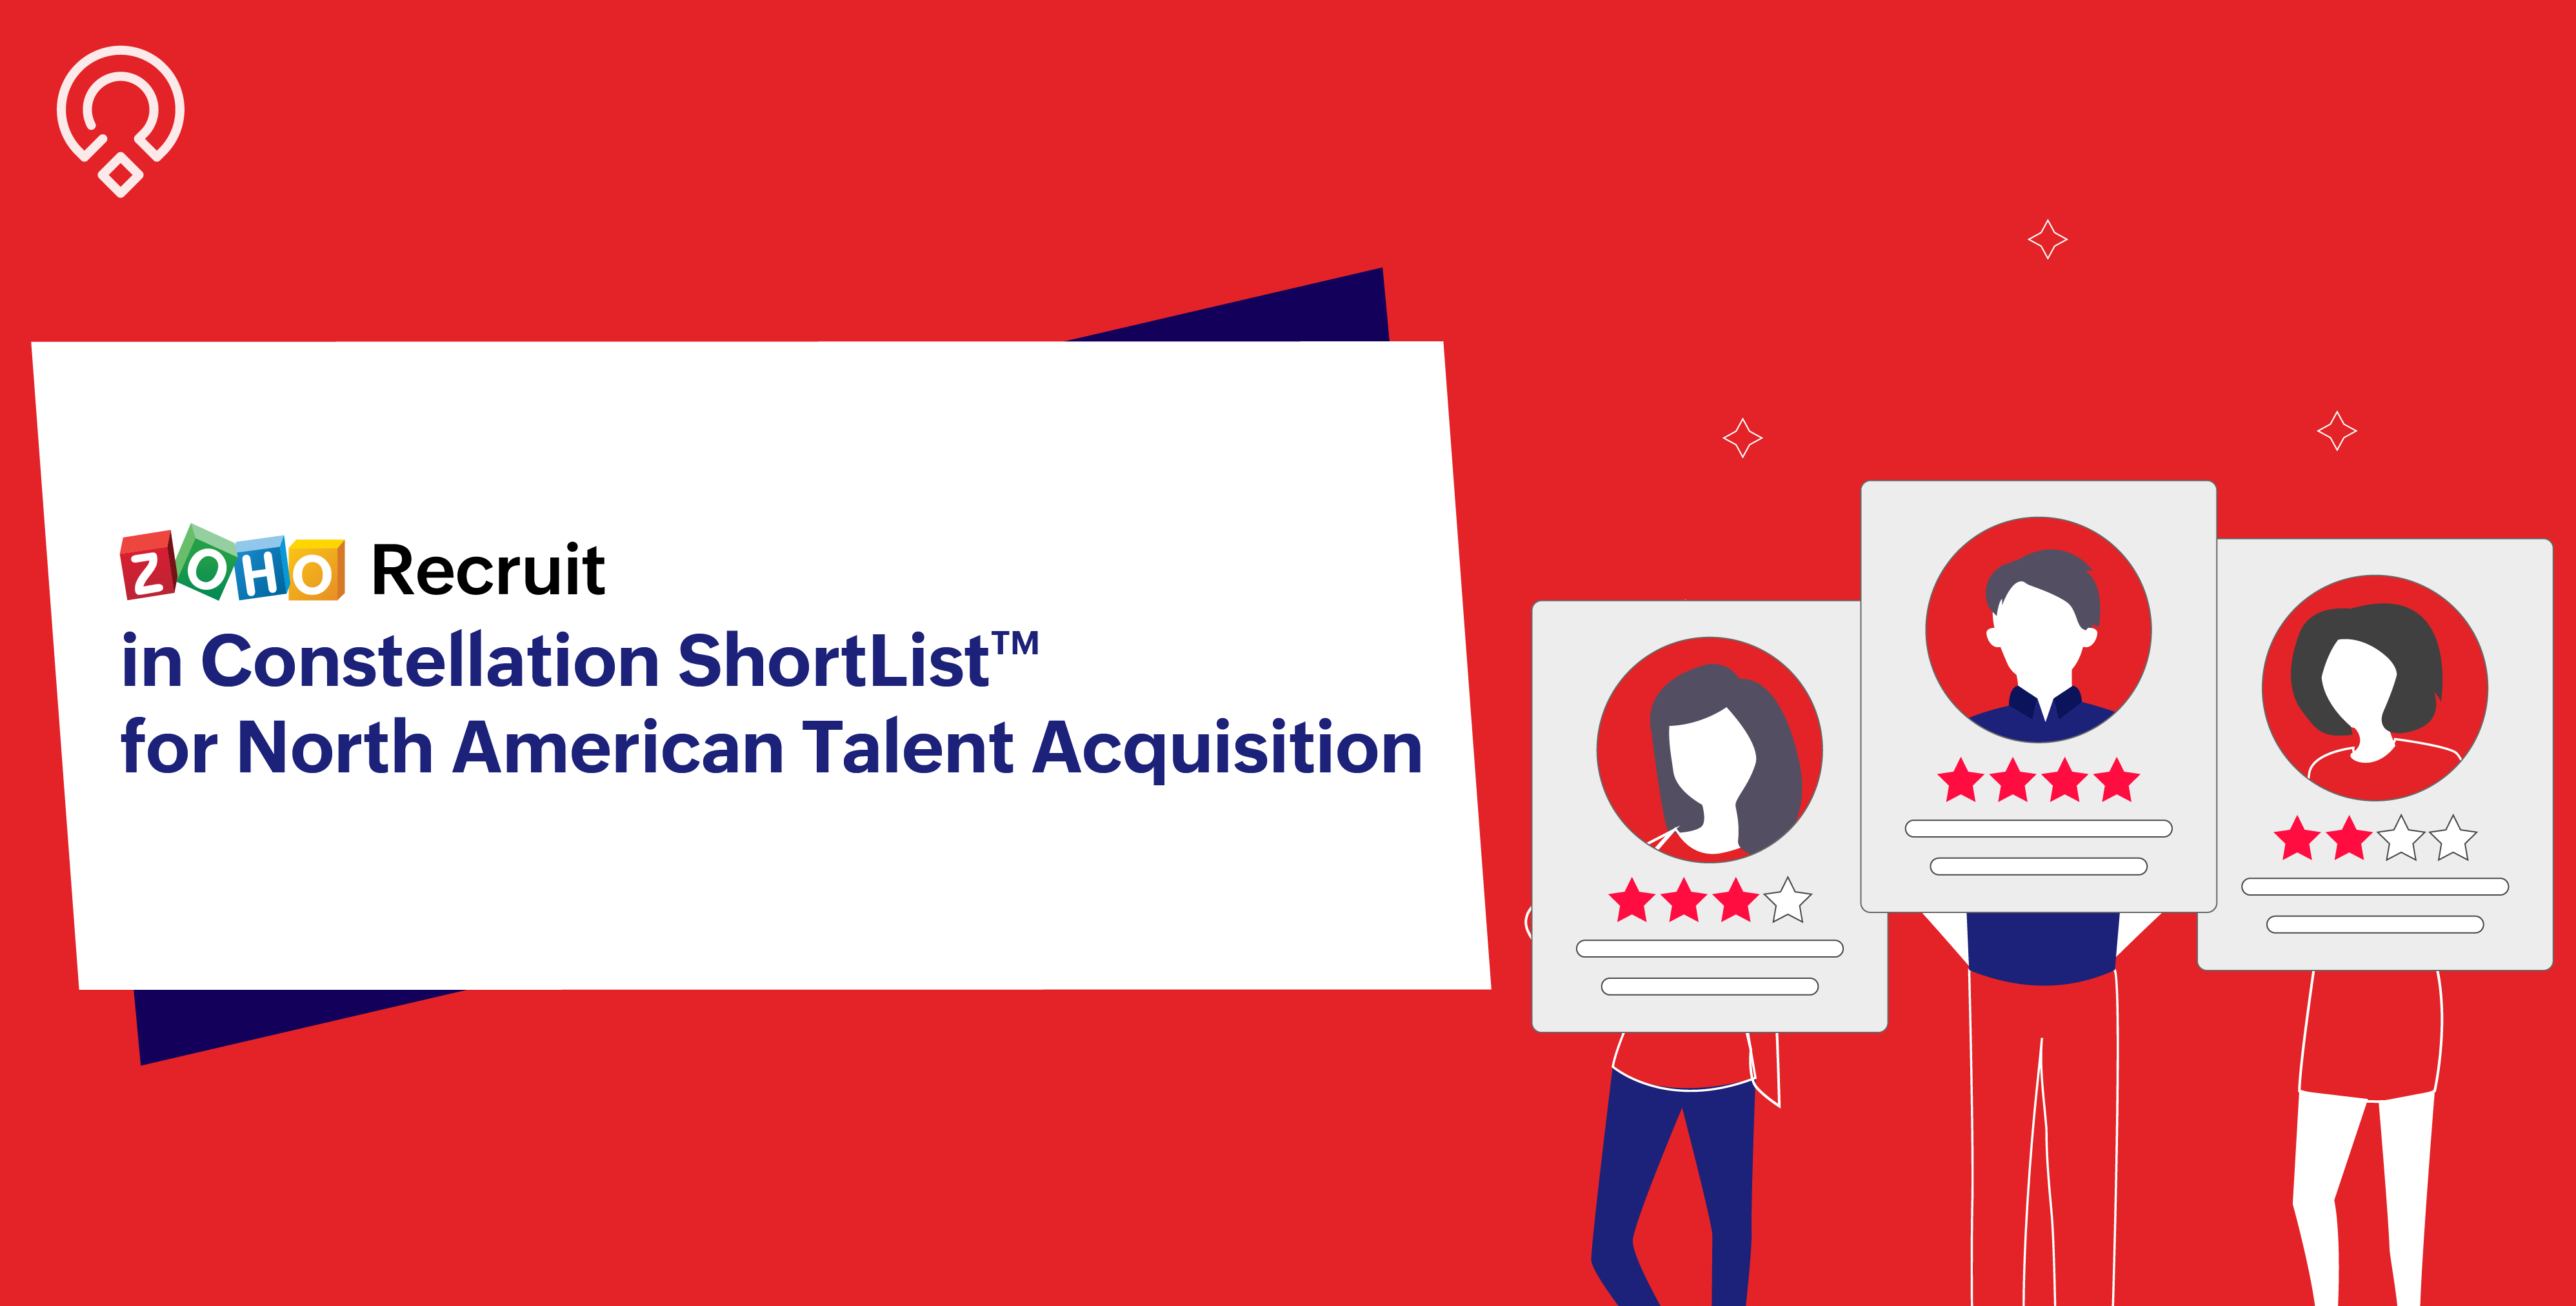 Constellation ShortList™ recognizes Zoho Recruit as a Leading Talent Acquisition Solution